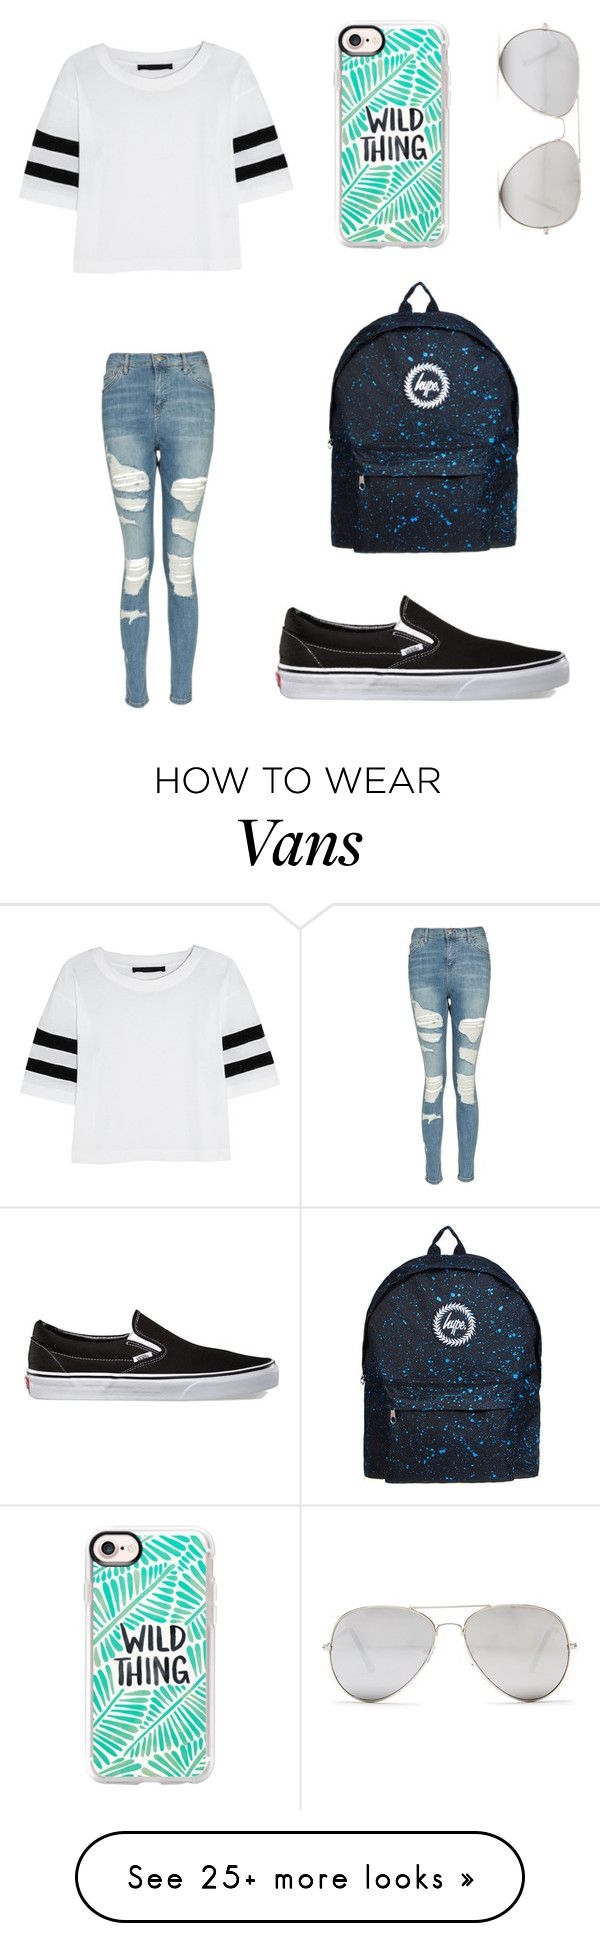 """""""Long To-Do list"""" by sarahfohlen on Polyvore featuring Casetify, Karl Lagerfeld, Sunny Rebel, Topshop, Vans, Spring and 2k17"""